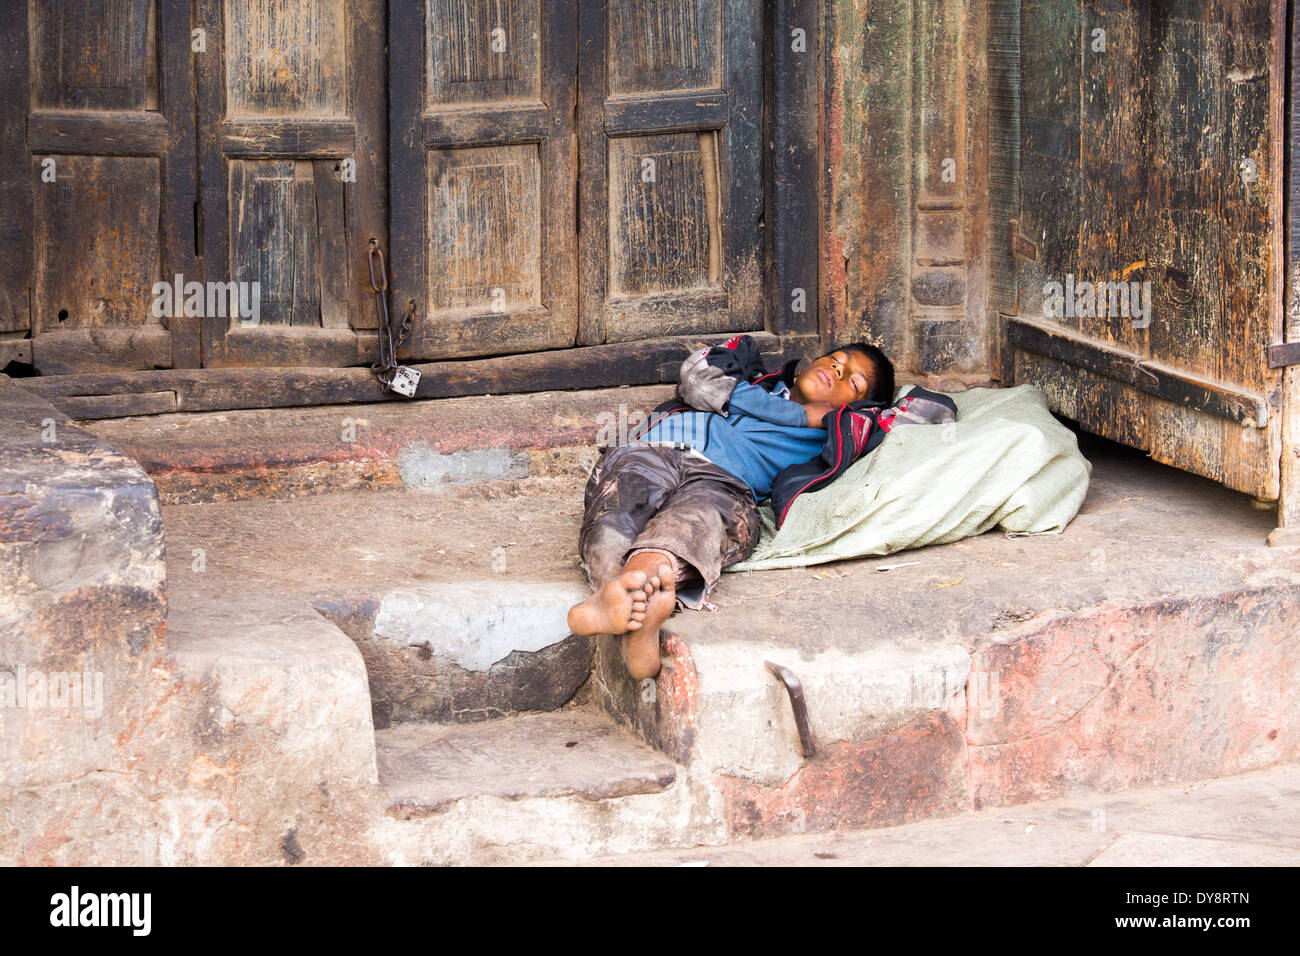 Homeless boy in Old Delhi, India - Stock Image